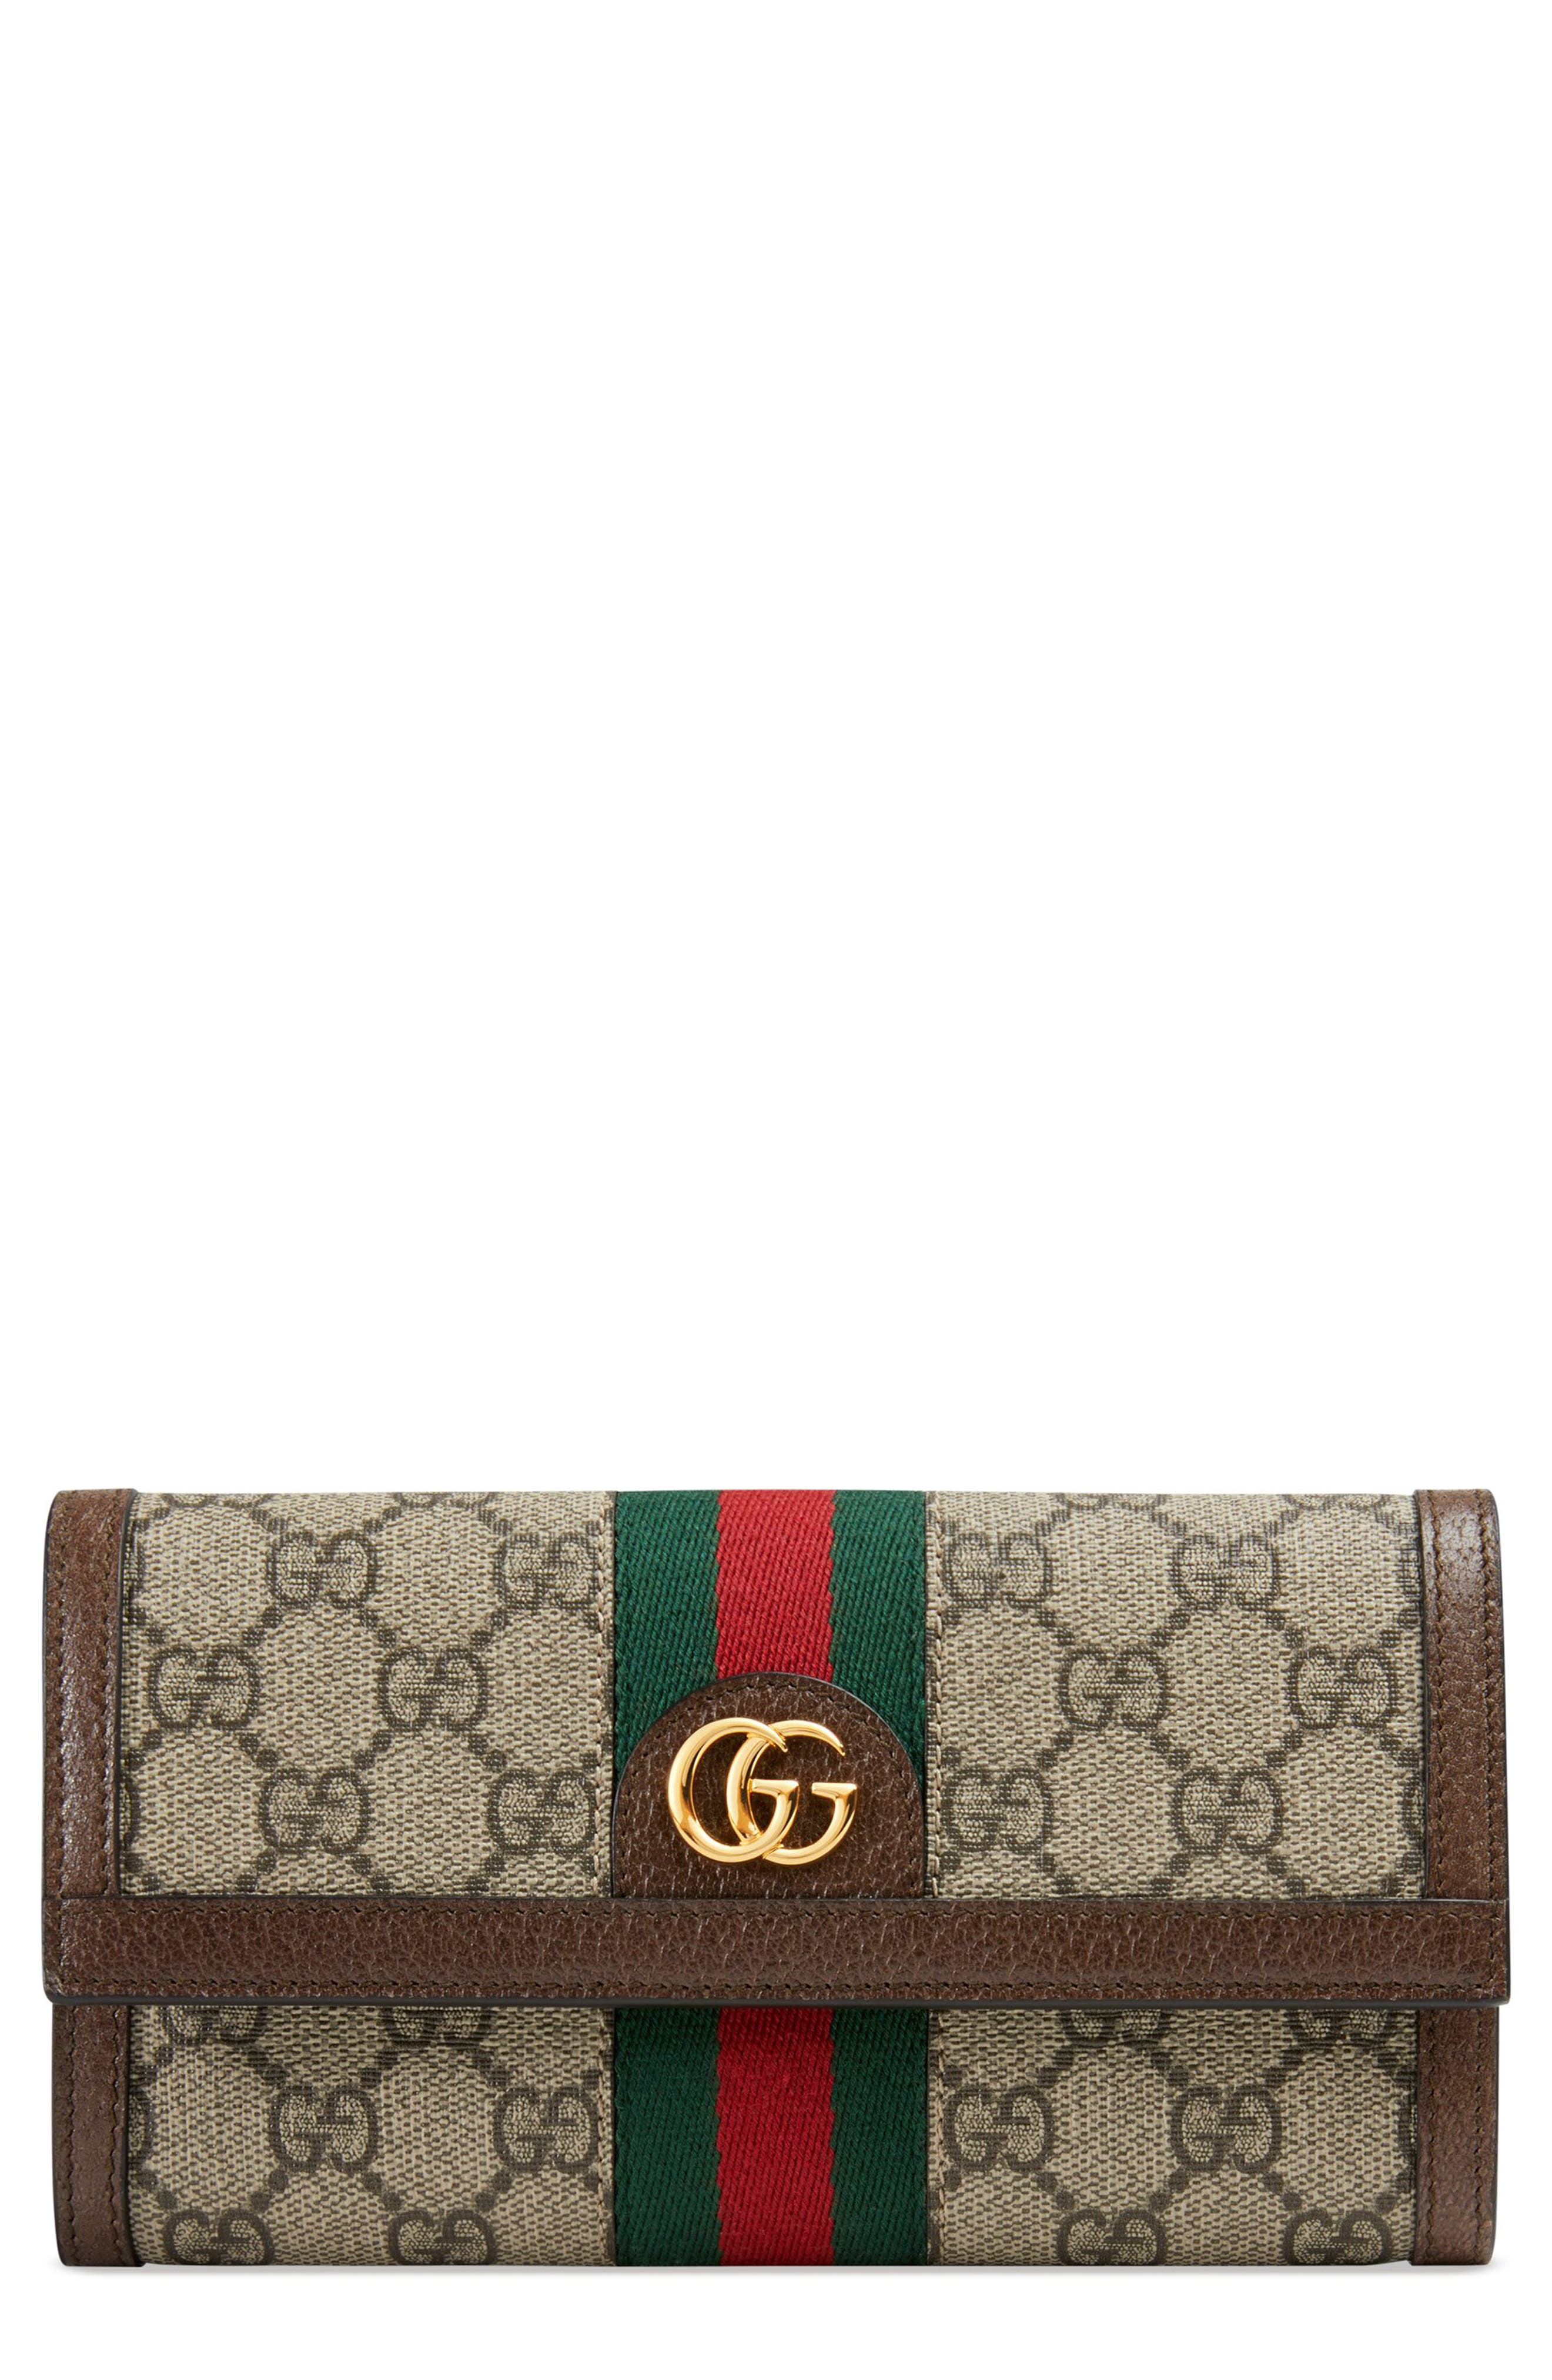 Ophidia GG Supreme Continental Wallet,                             Main thumbnail 1, color,                             Beige Ebony/ Acero/ Vert Red